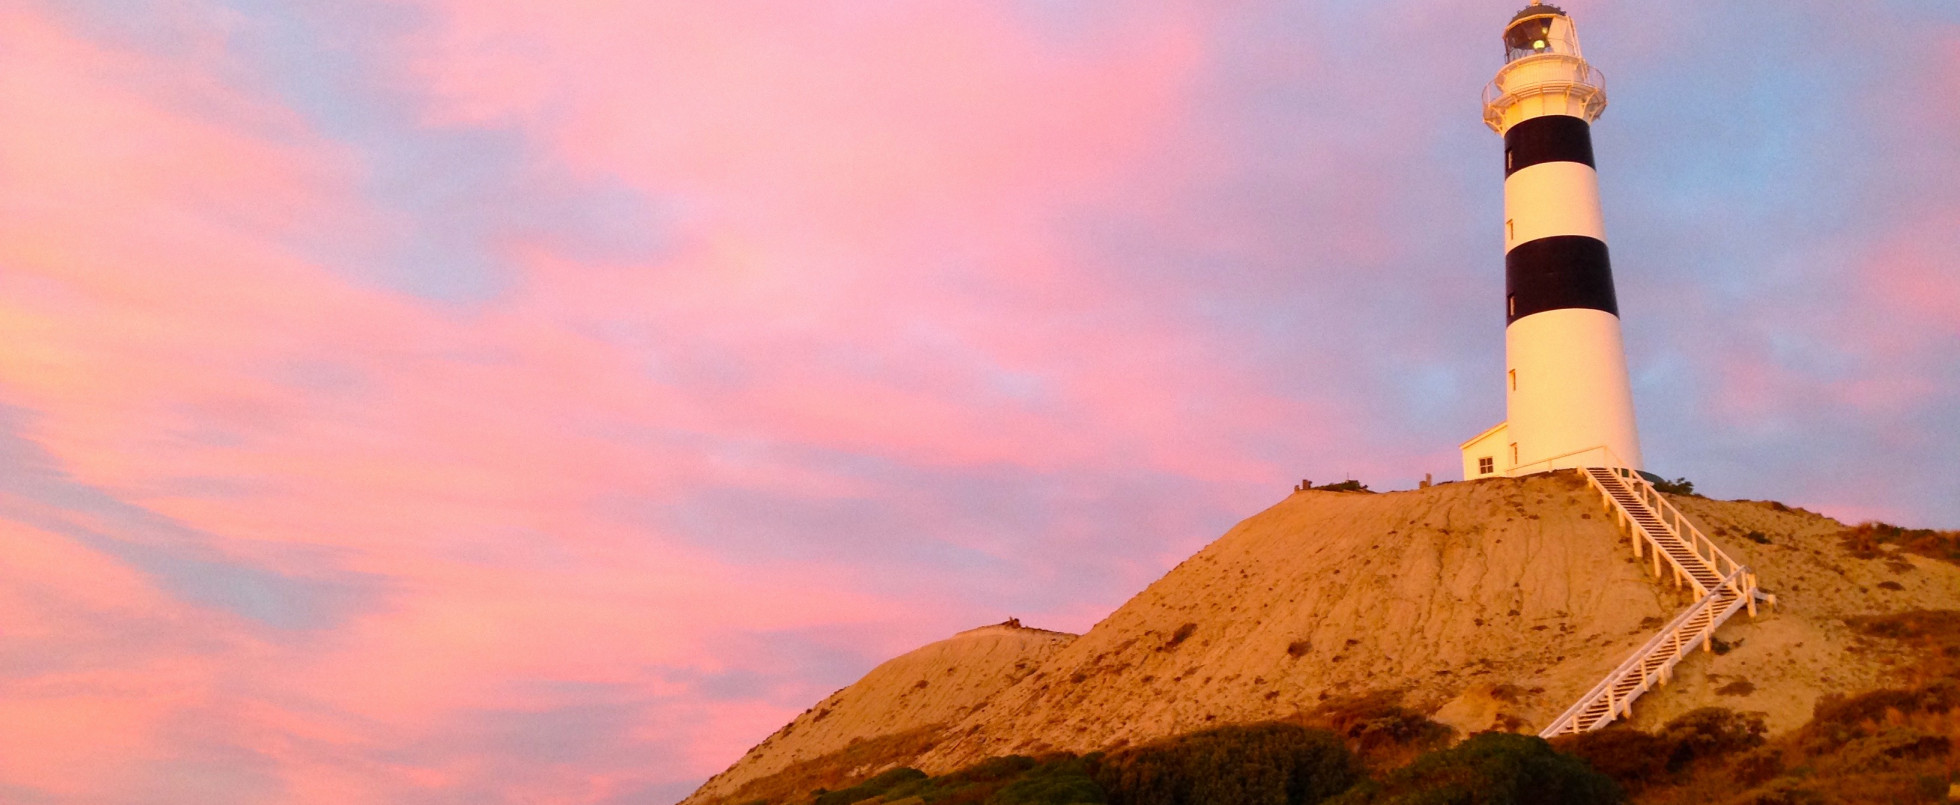 The Road to Janus